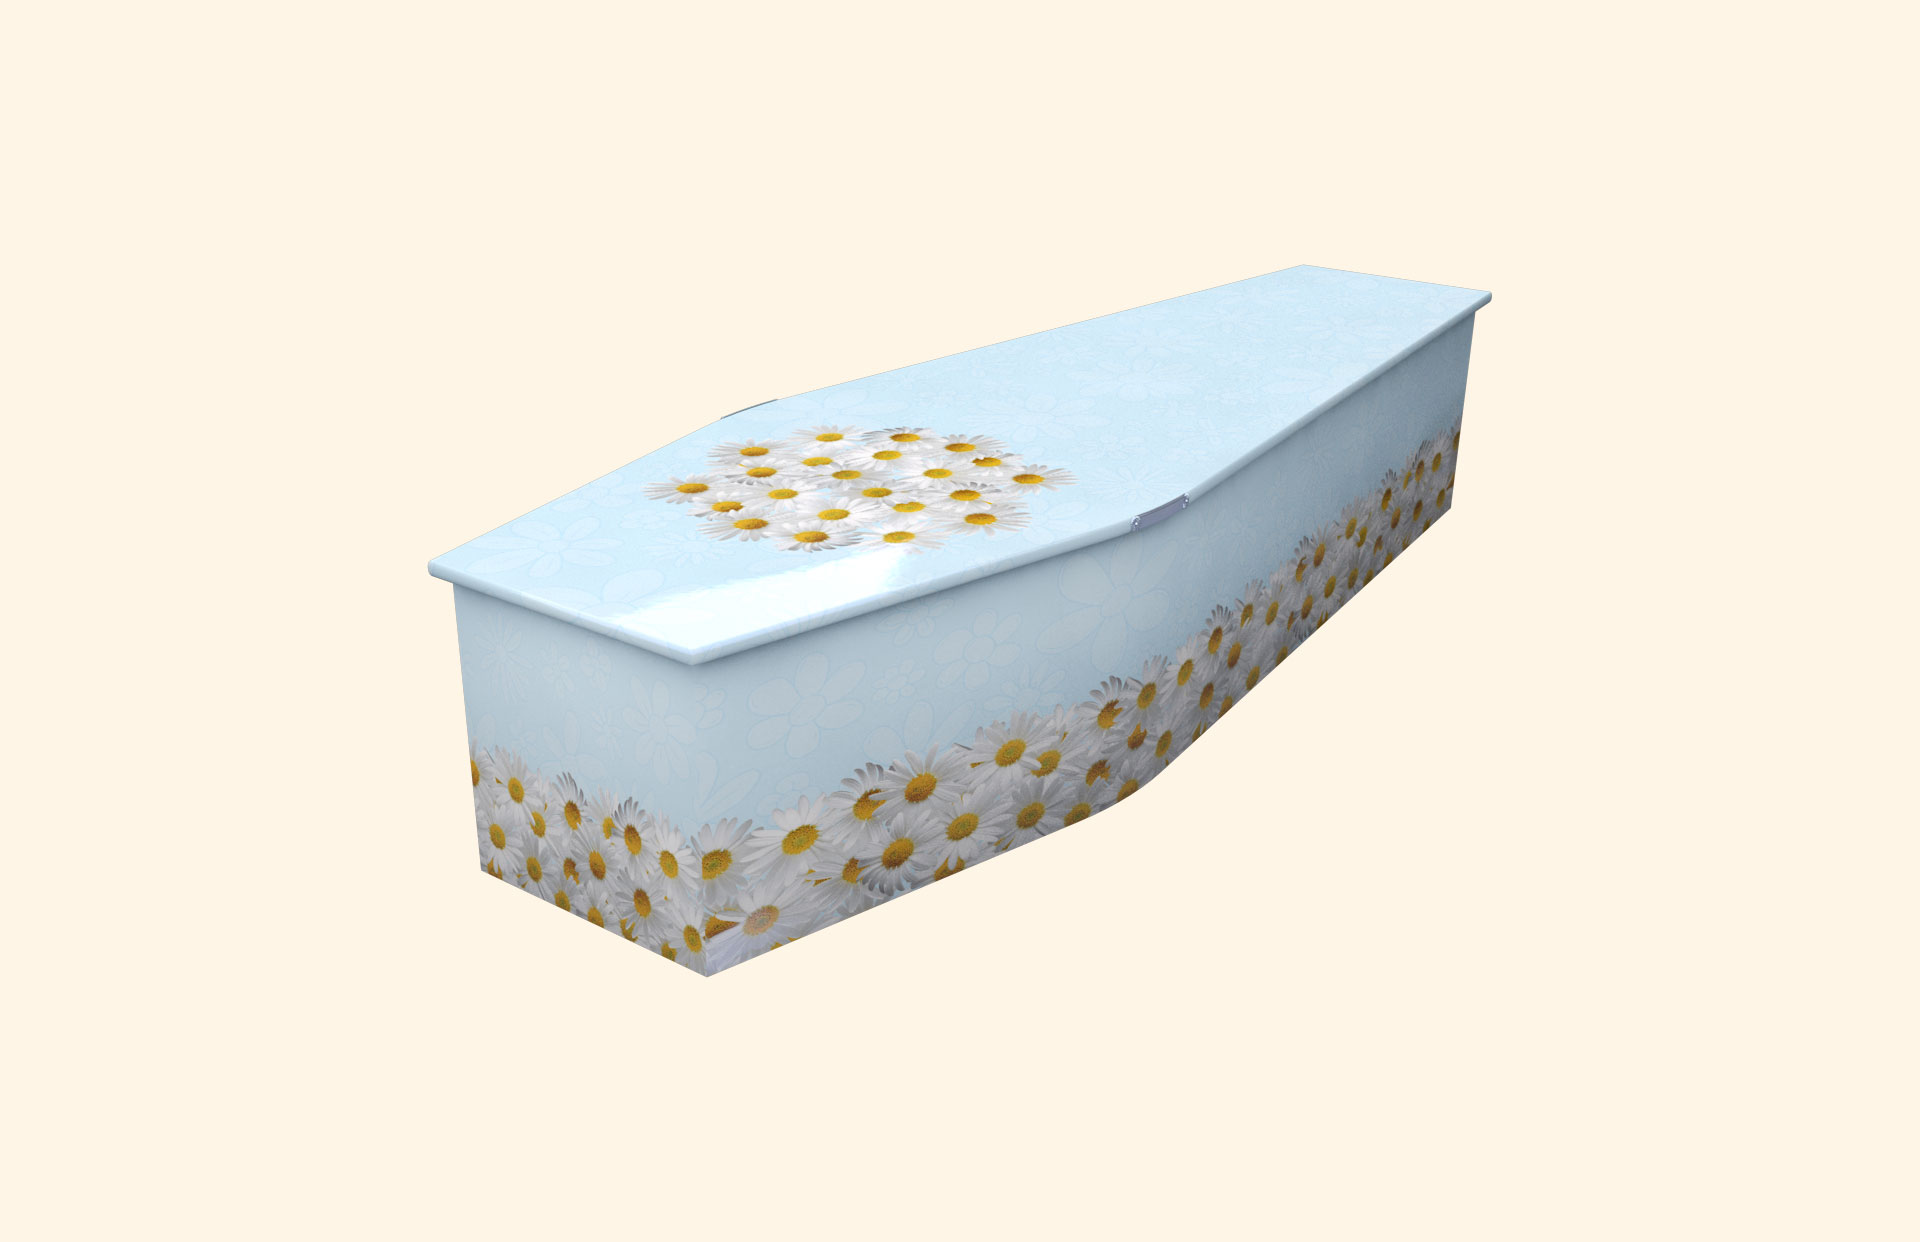 Bed of Daisies blue child coffin